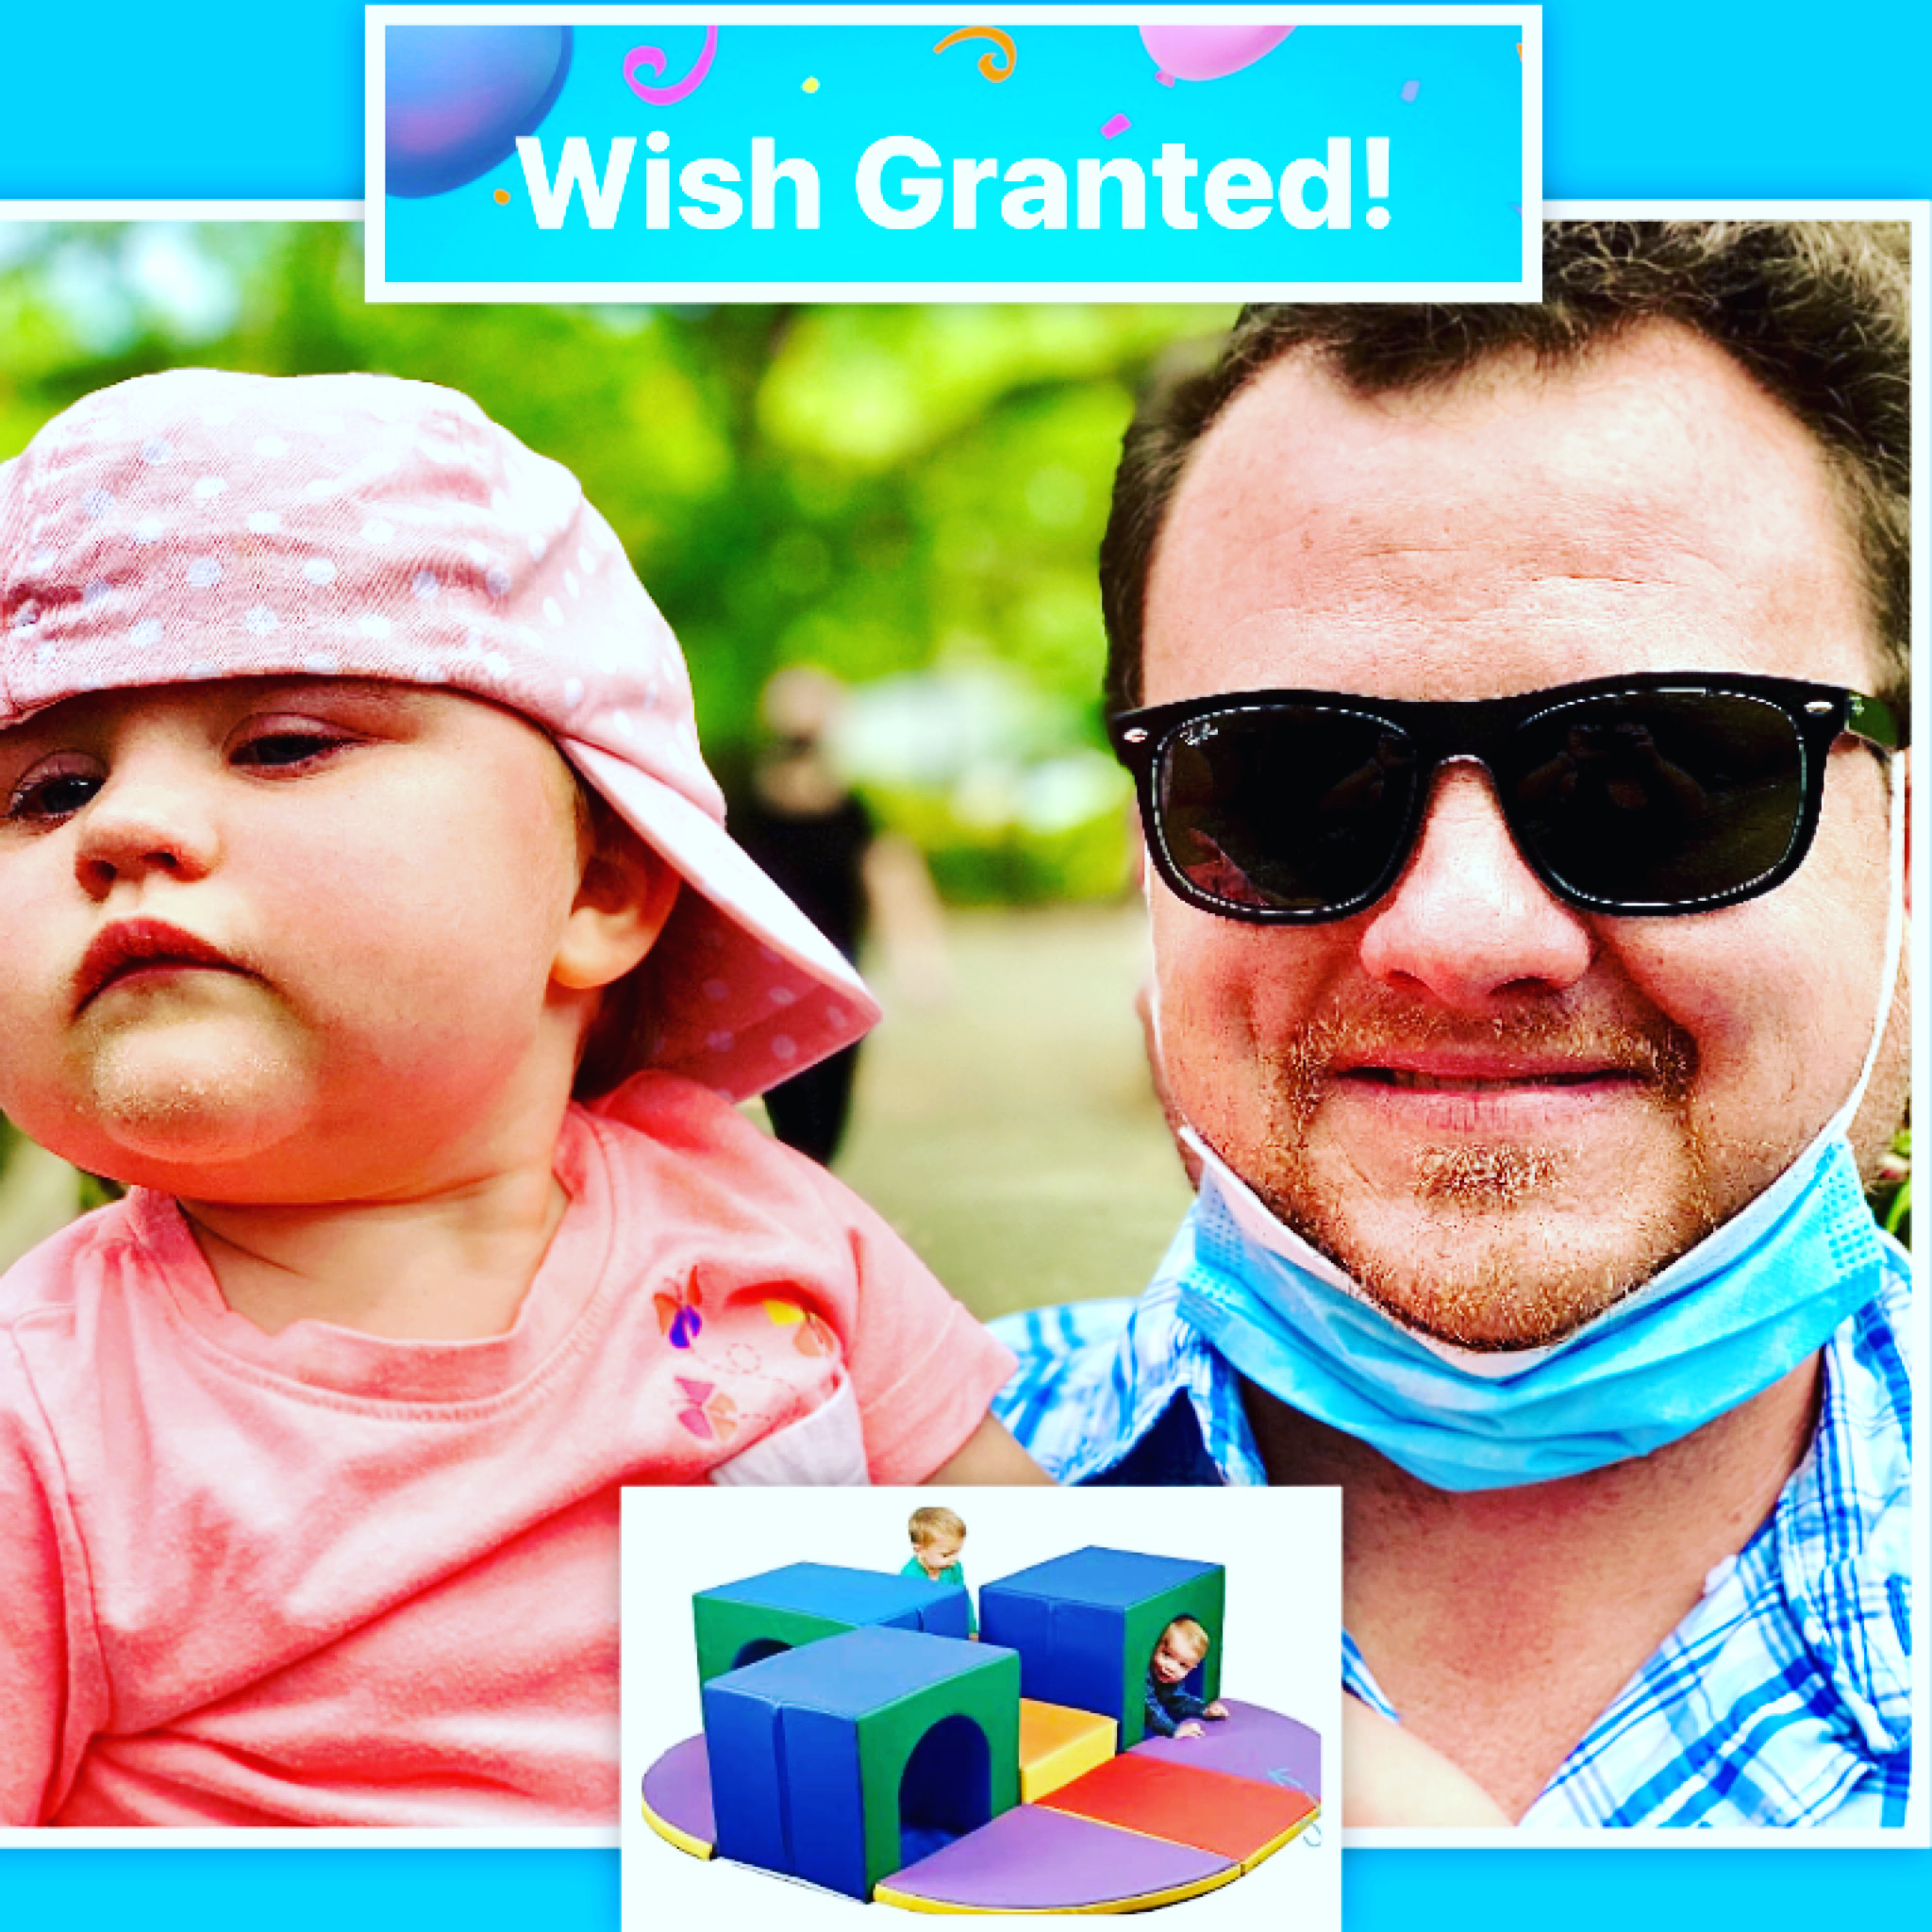 WANTED for loving daddy for his baby girl so she could play and exercise safely. Meet Daniel & Avery. ⭐️